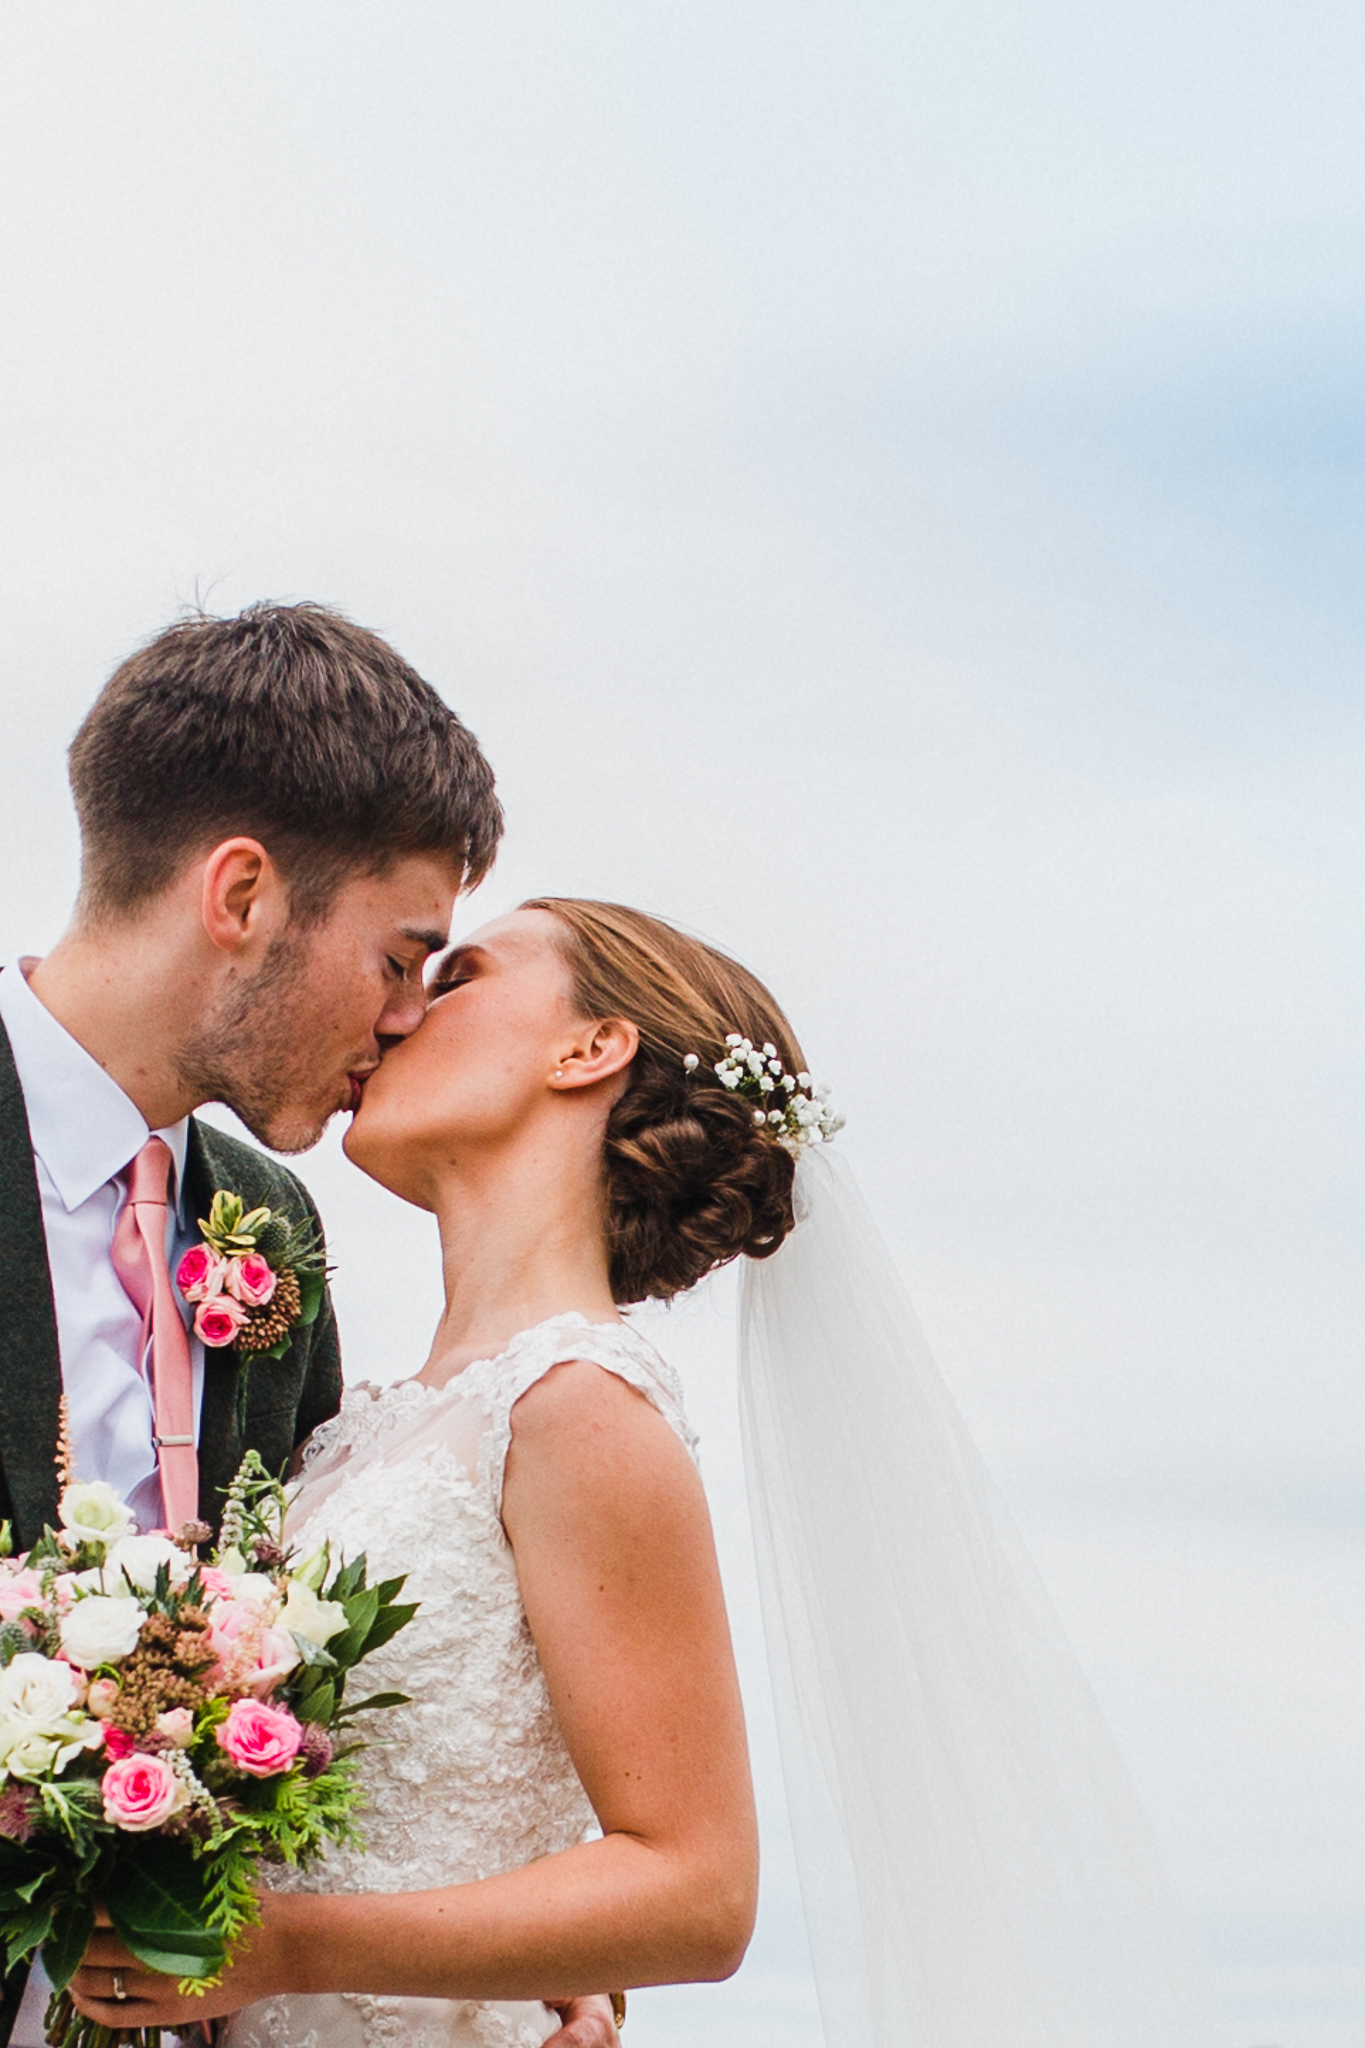 Jess and Ben - Liverpool wedding - bride and groom kissing